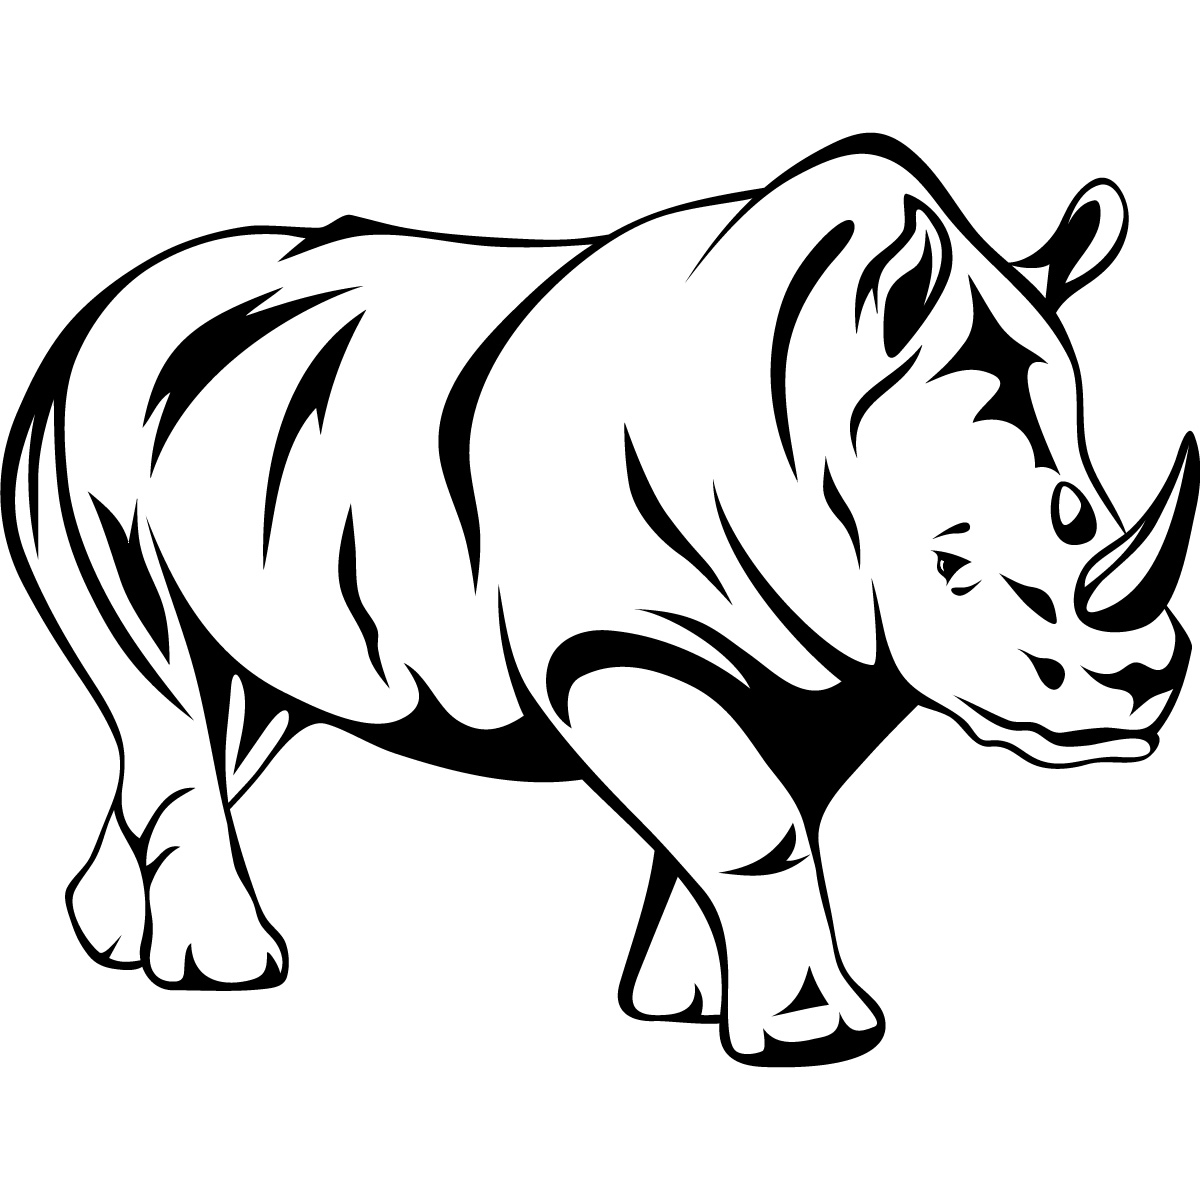 Line Drawing Pictures Animals : Animal line drawings clipart best